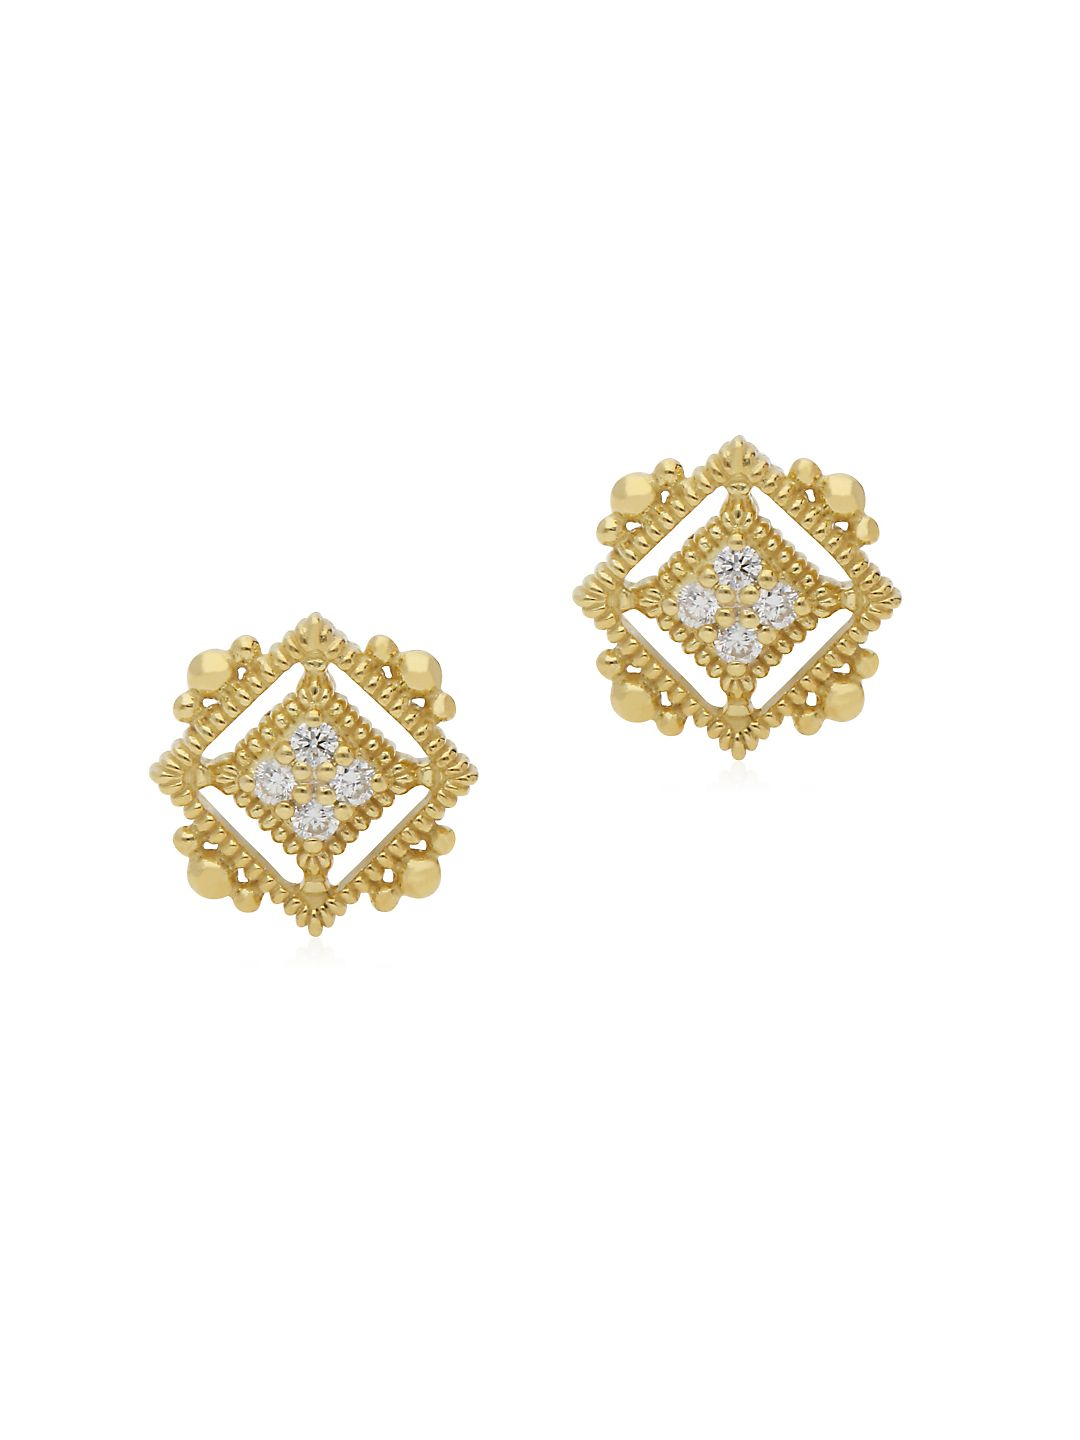 Juliette Pavé Diamond and 14K Gold Stud Earrings